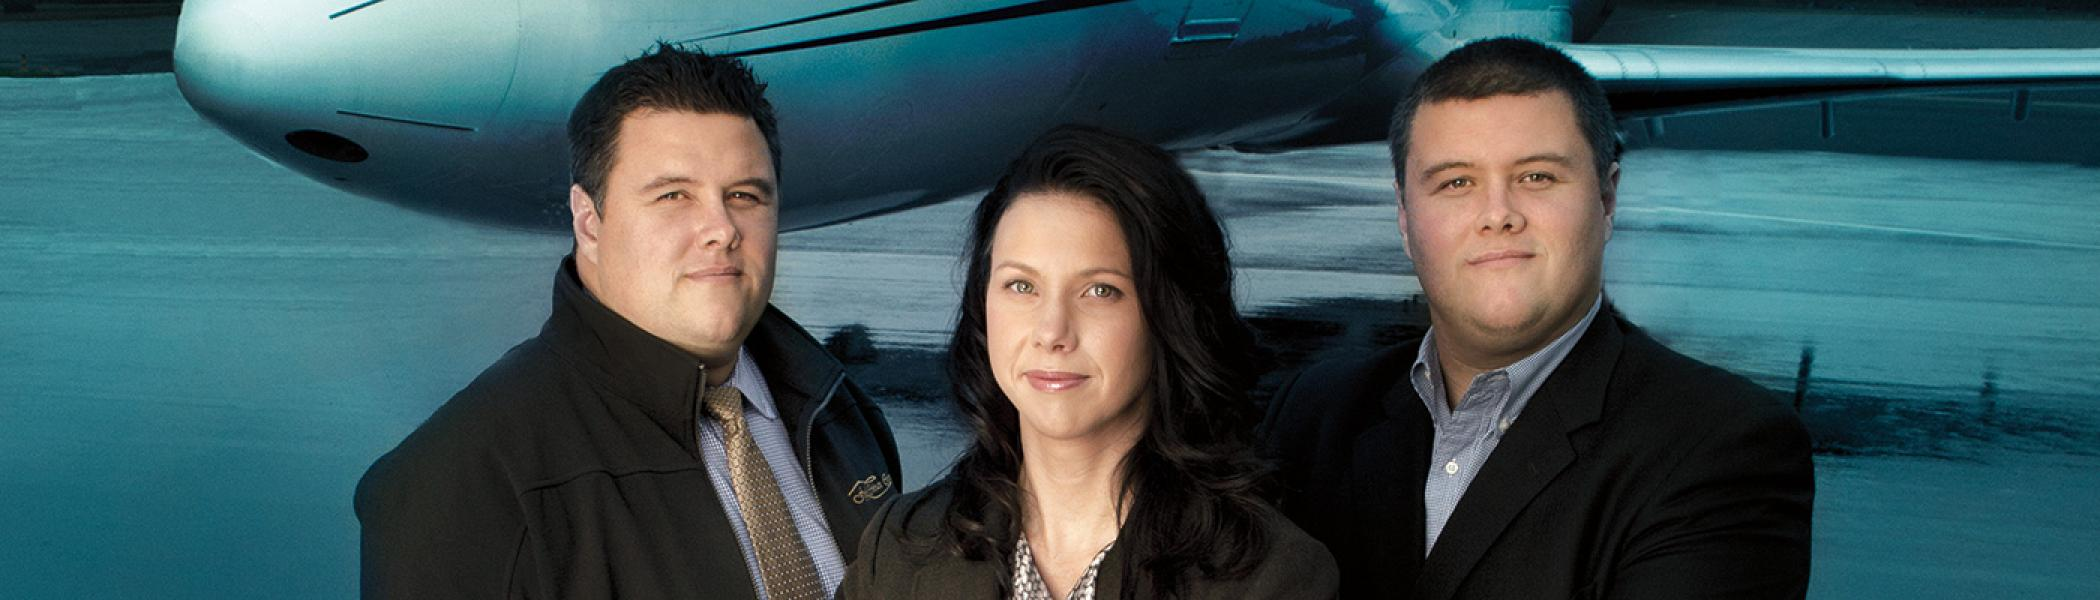 Business program alumni posing in front of a jet on a runway that they own